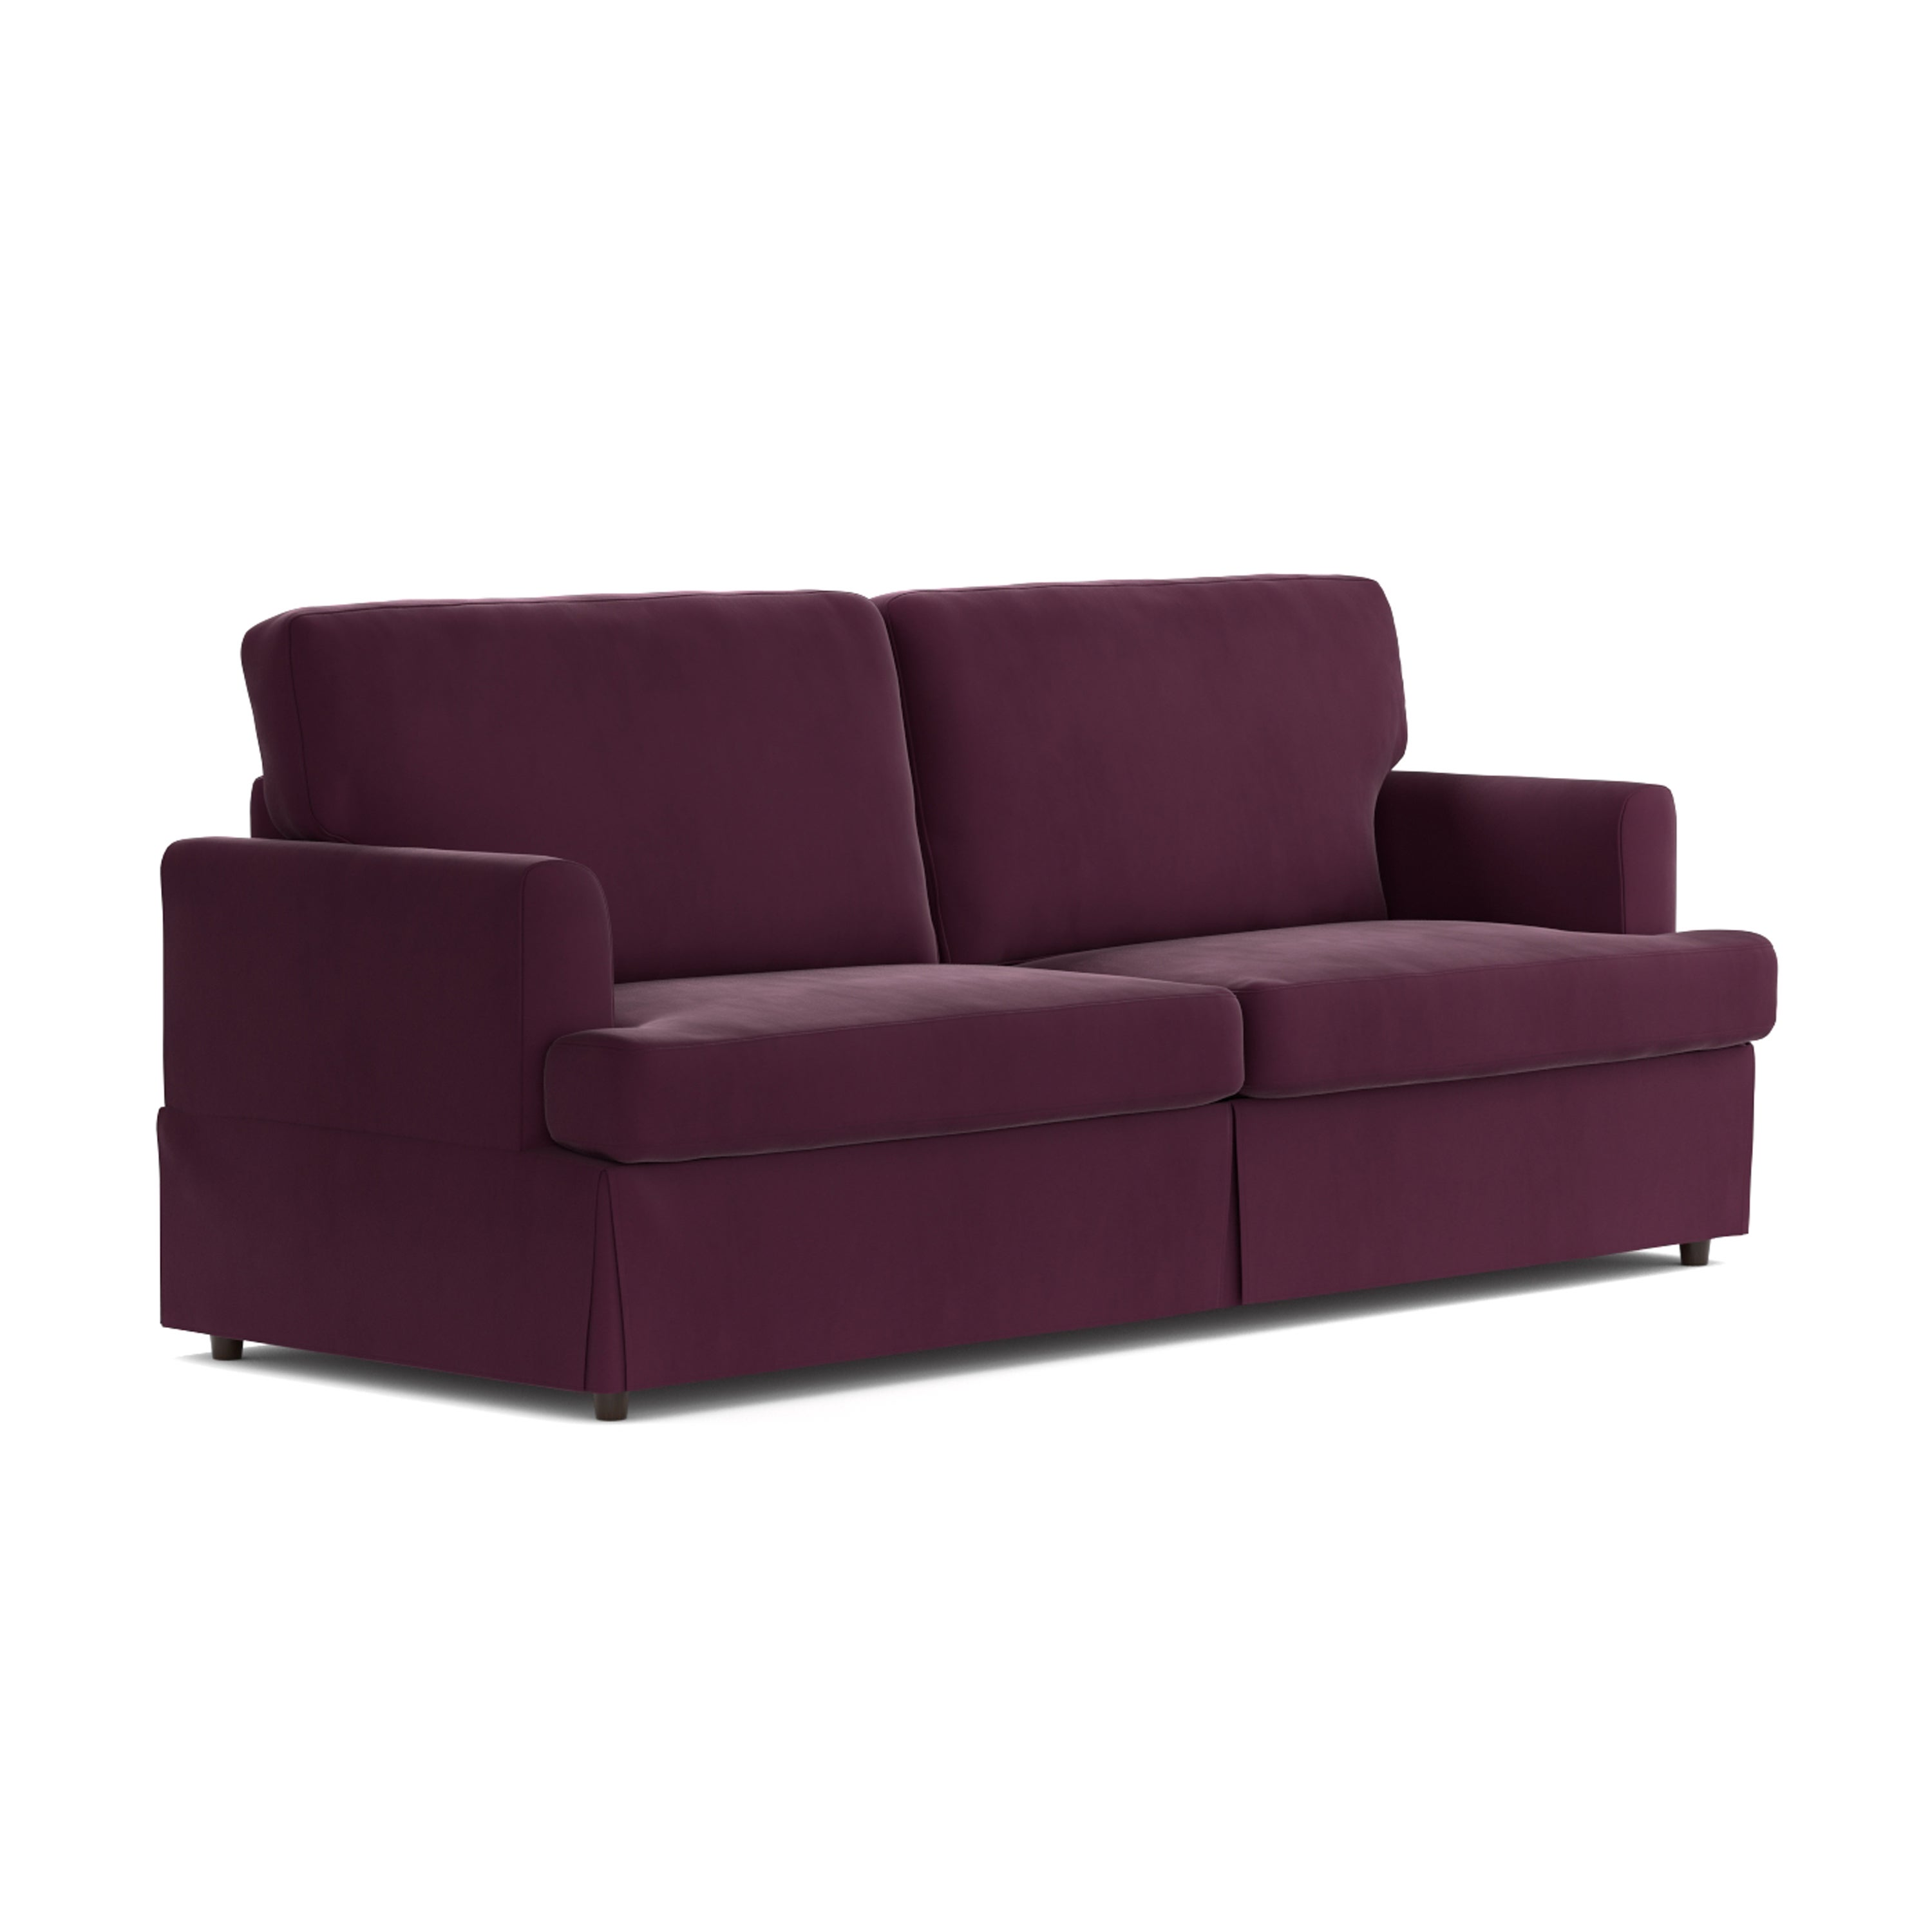 Handy Living Undercover Custom Orlando SoFast Sofa with S...